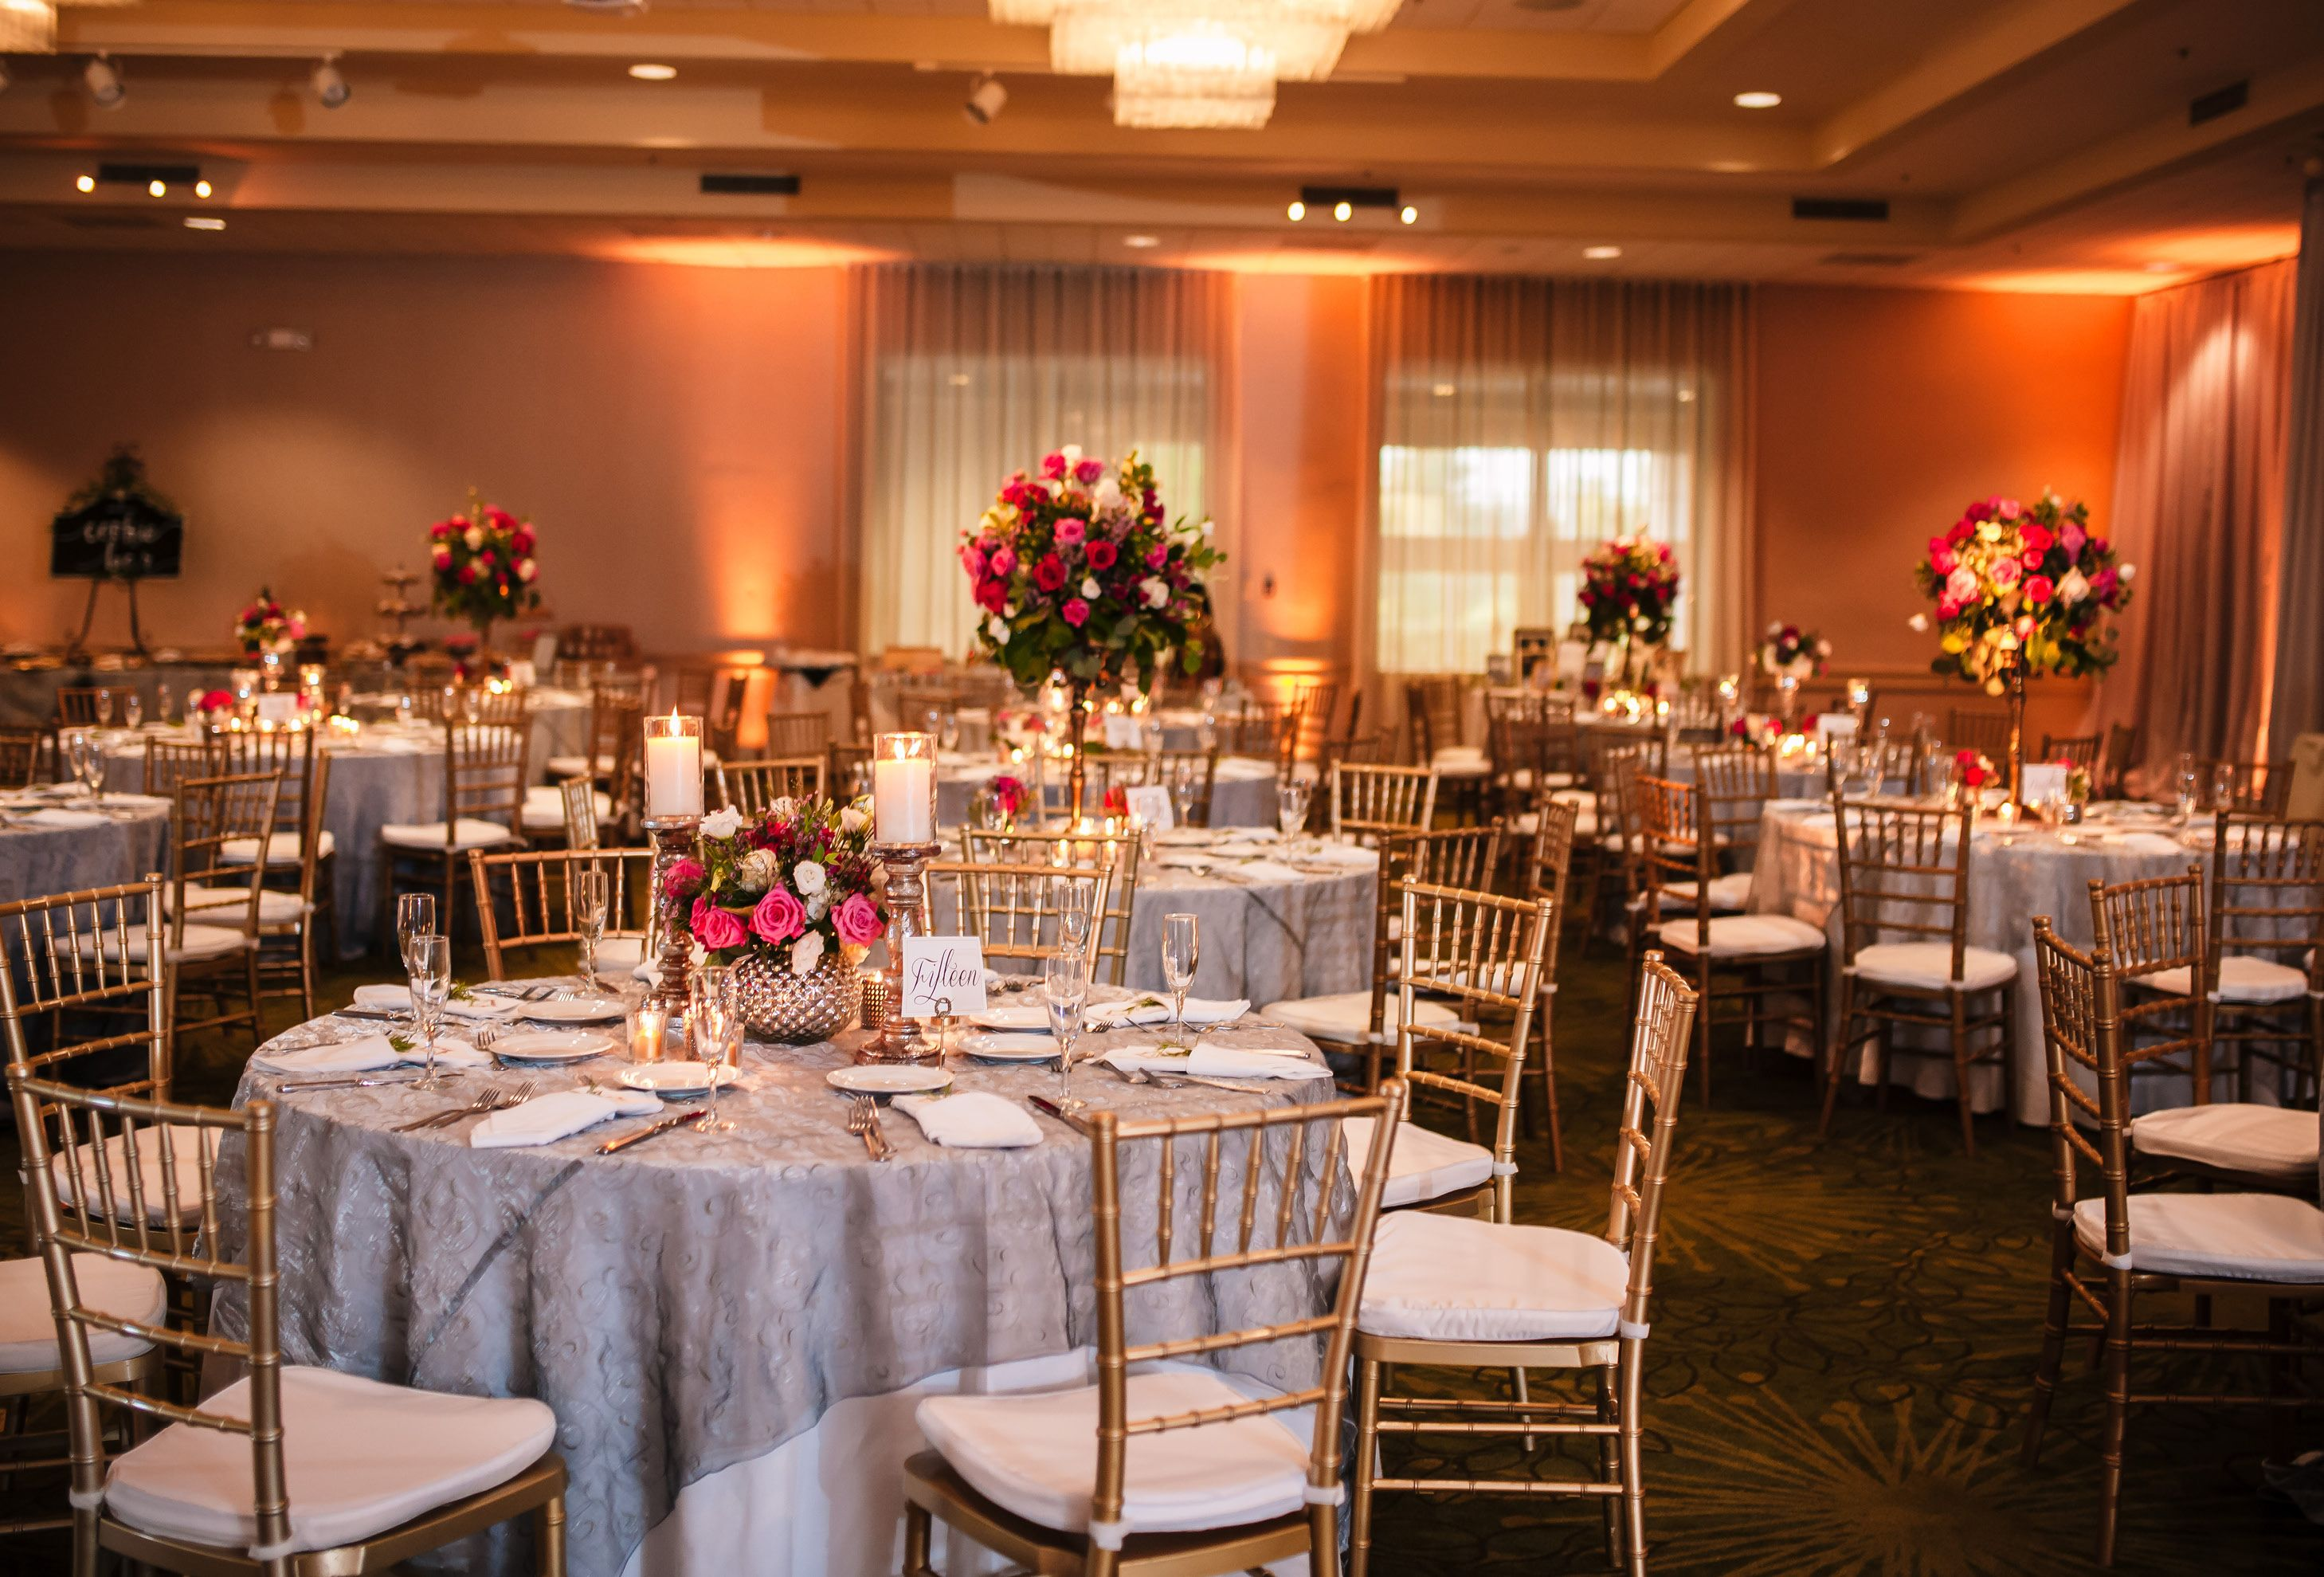 Turf Valley Wedding Grand Ballroom Photography By Brea Affordable Reception Resort Wedding Table Decorations